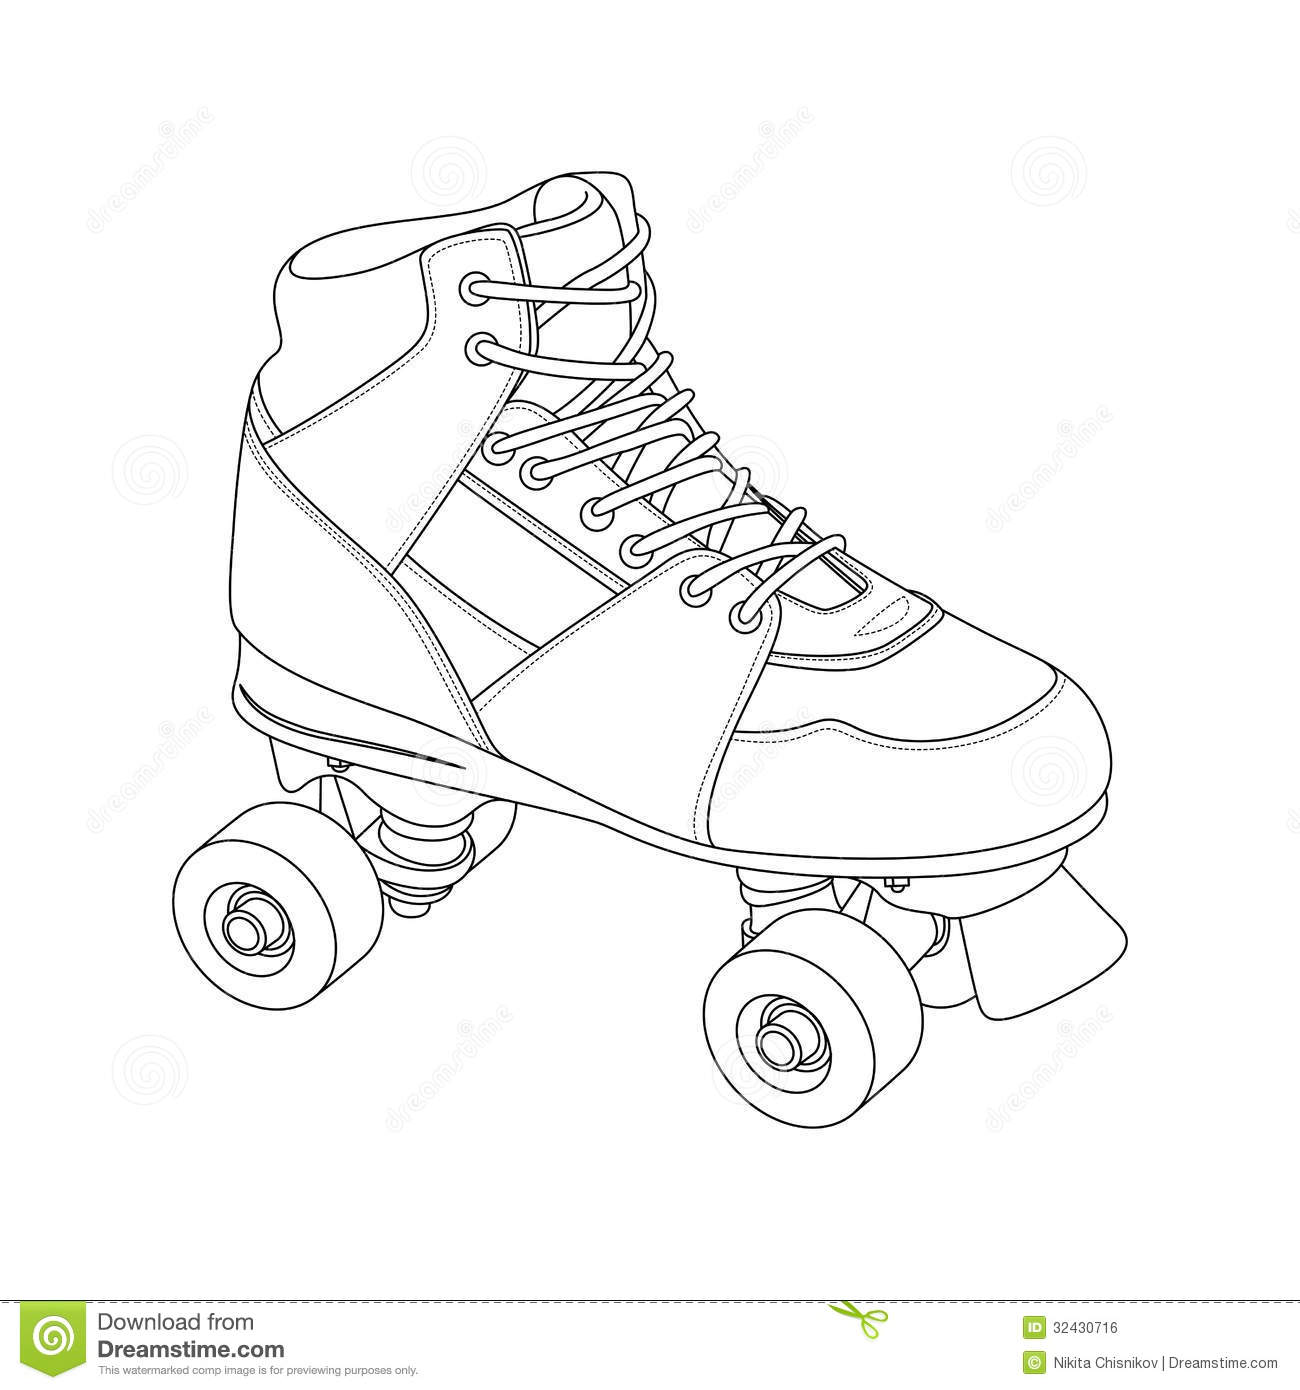 Free roller skating coloring pages -  Holiday Coloring Pages Roller Skate Coloring Page Roller Skate Royalty Free Stock Image Image